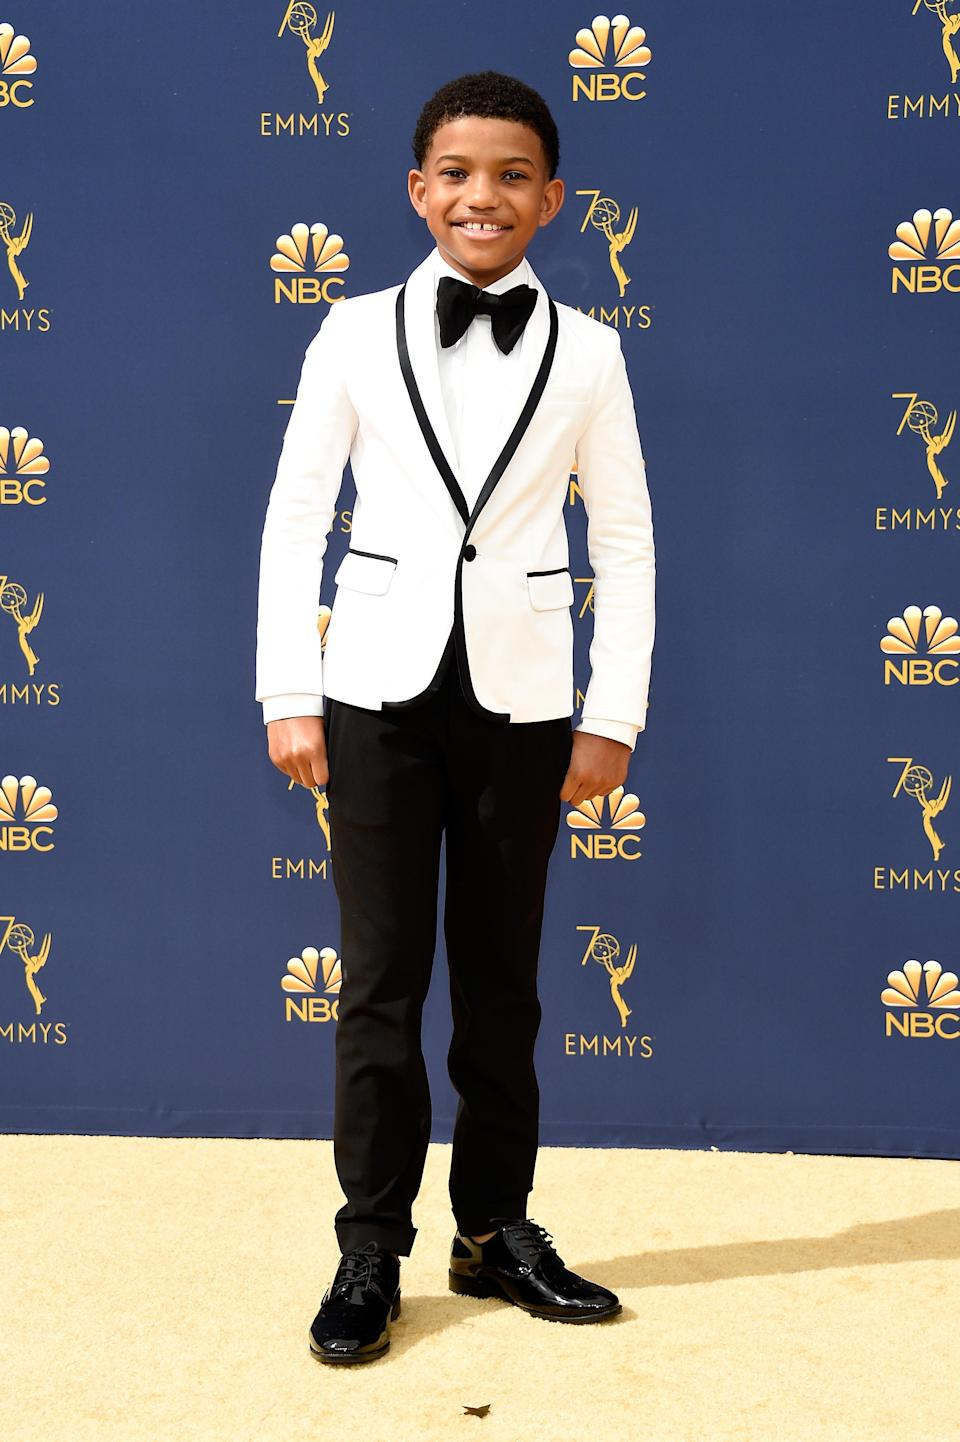 <p>The young <em>This Is Us</em> actor took a cue from his co-star Ventimiglia, wearing a white suit jacket with black detailing. (Photo: Getty Images) </p>